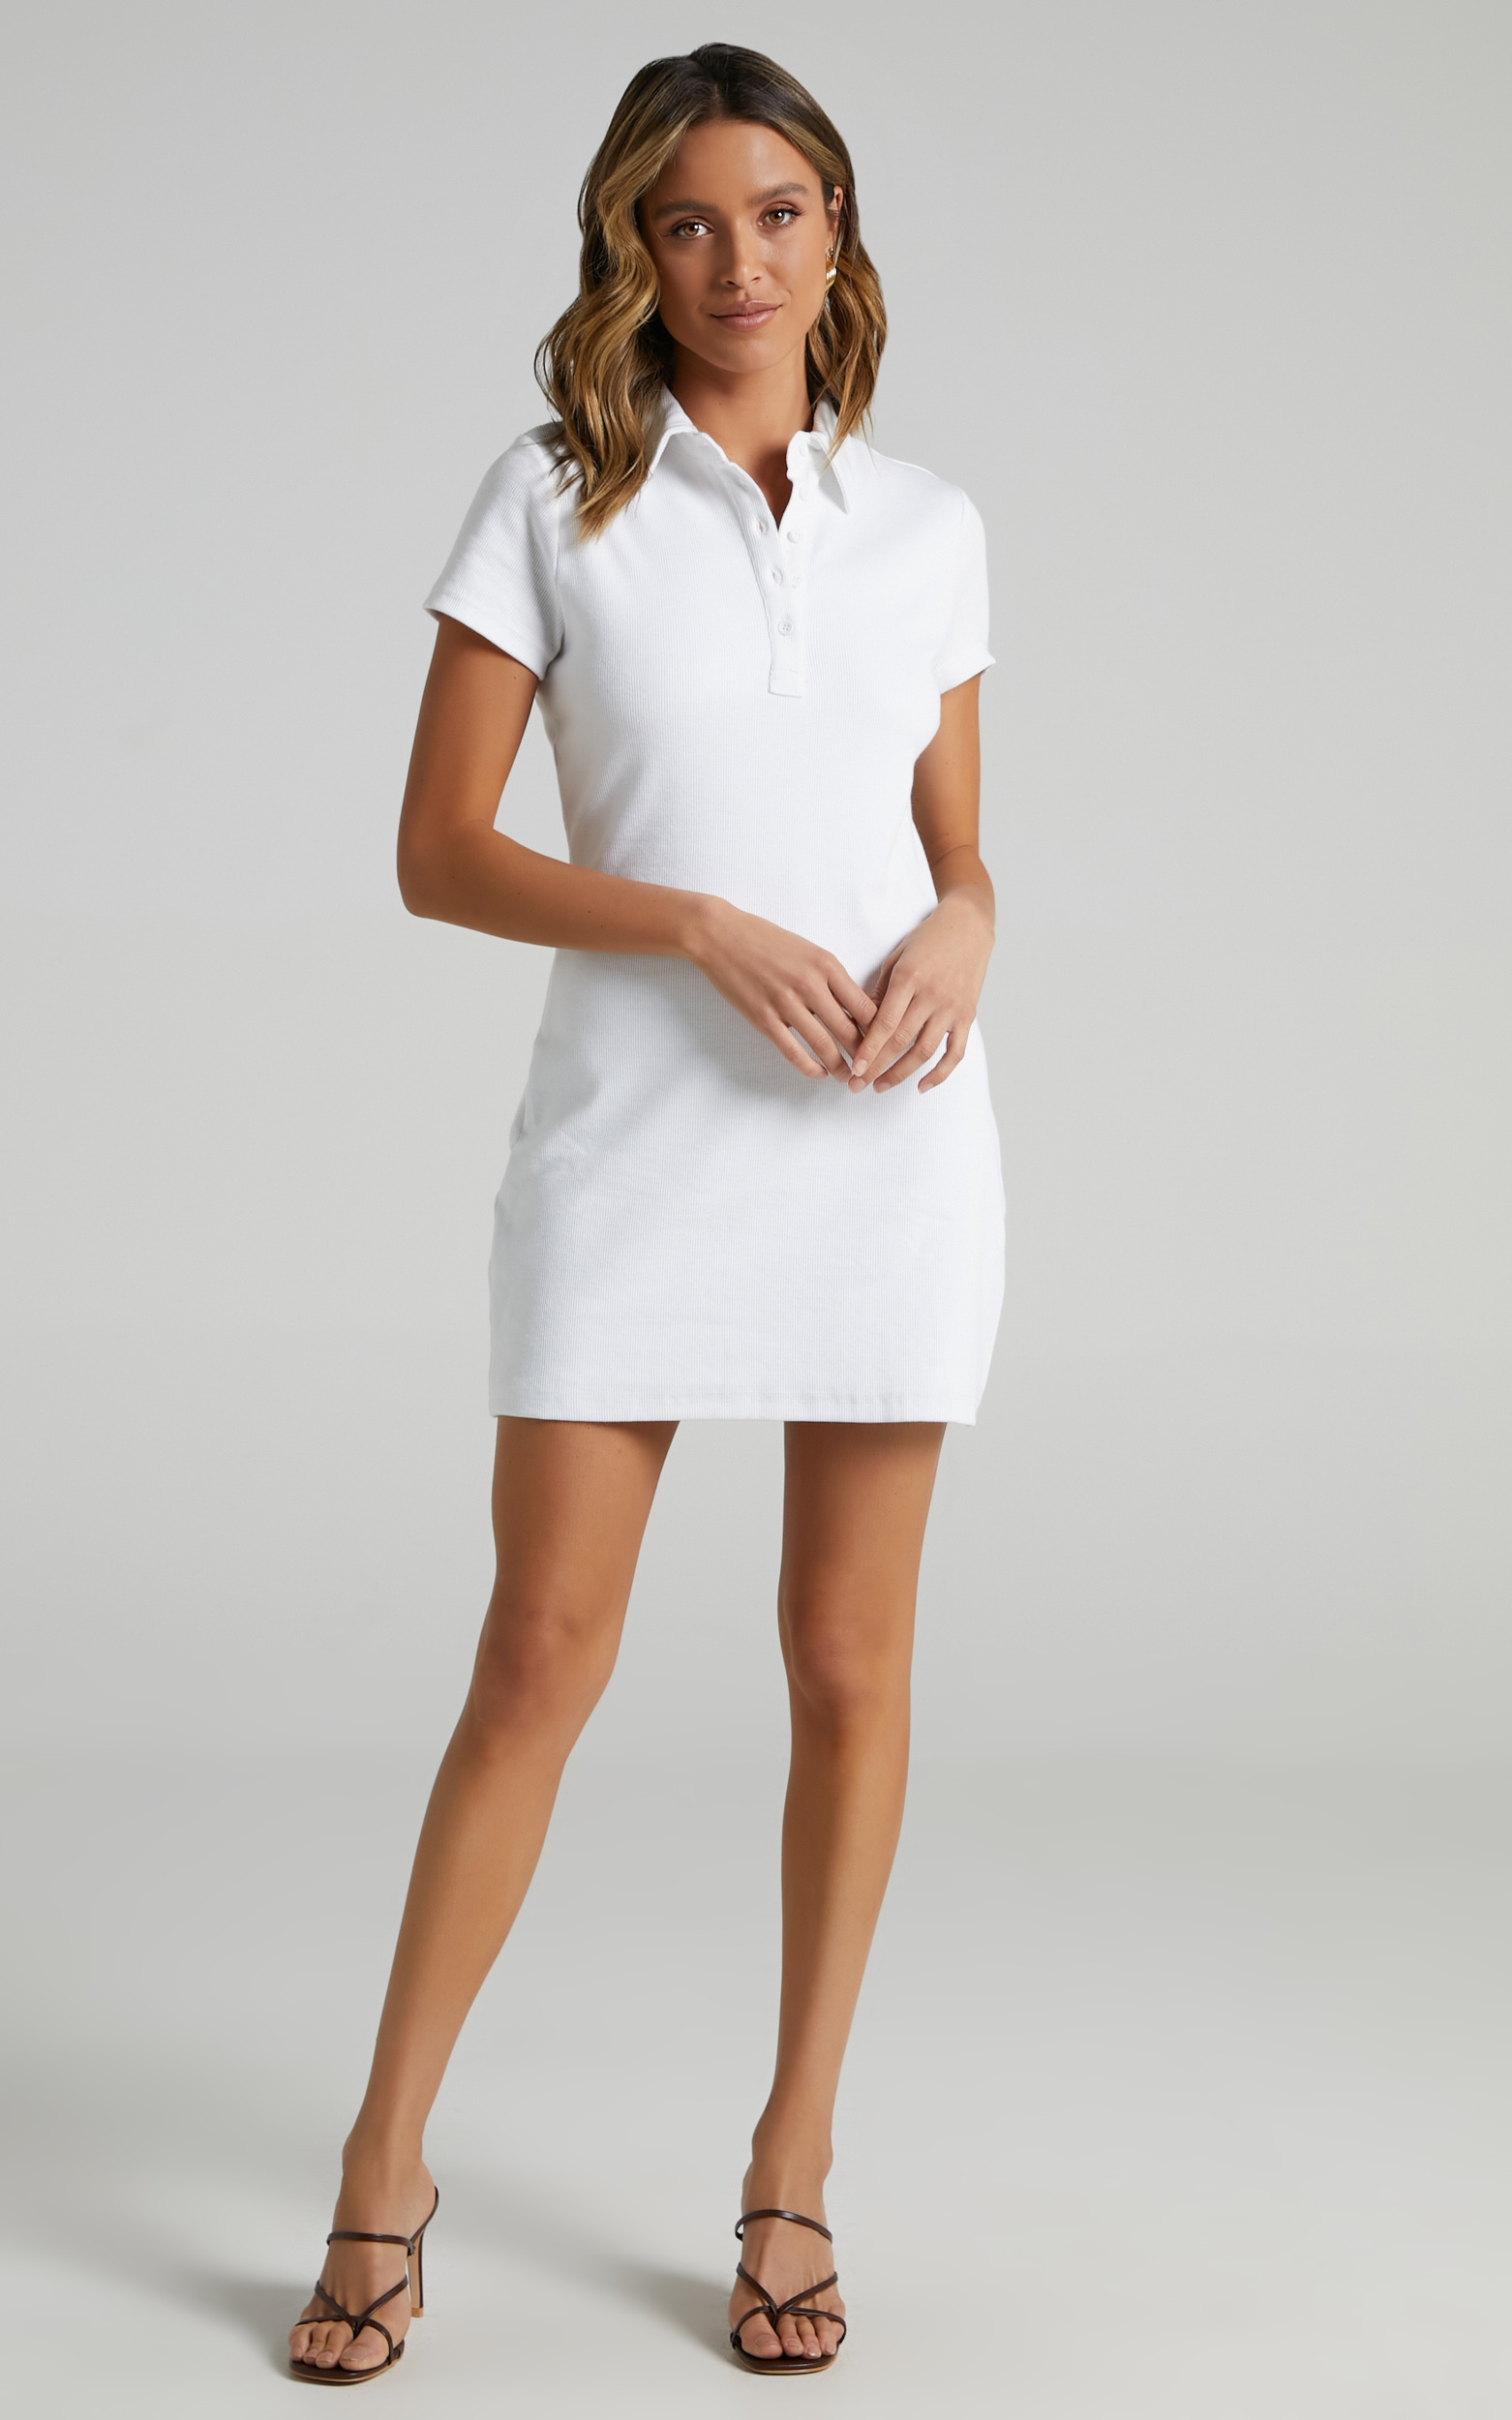 Leros Dress in White - 6 (XS), White, hi-res image number null